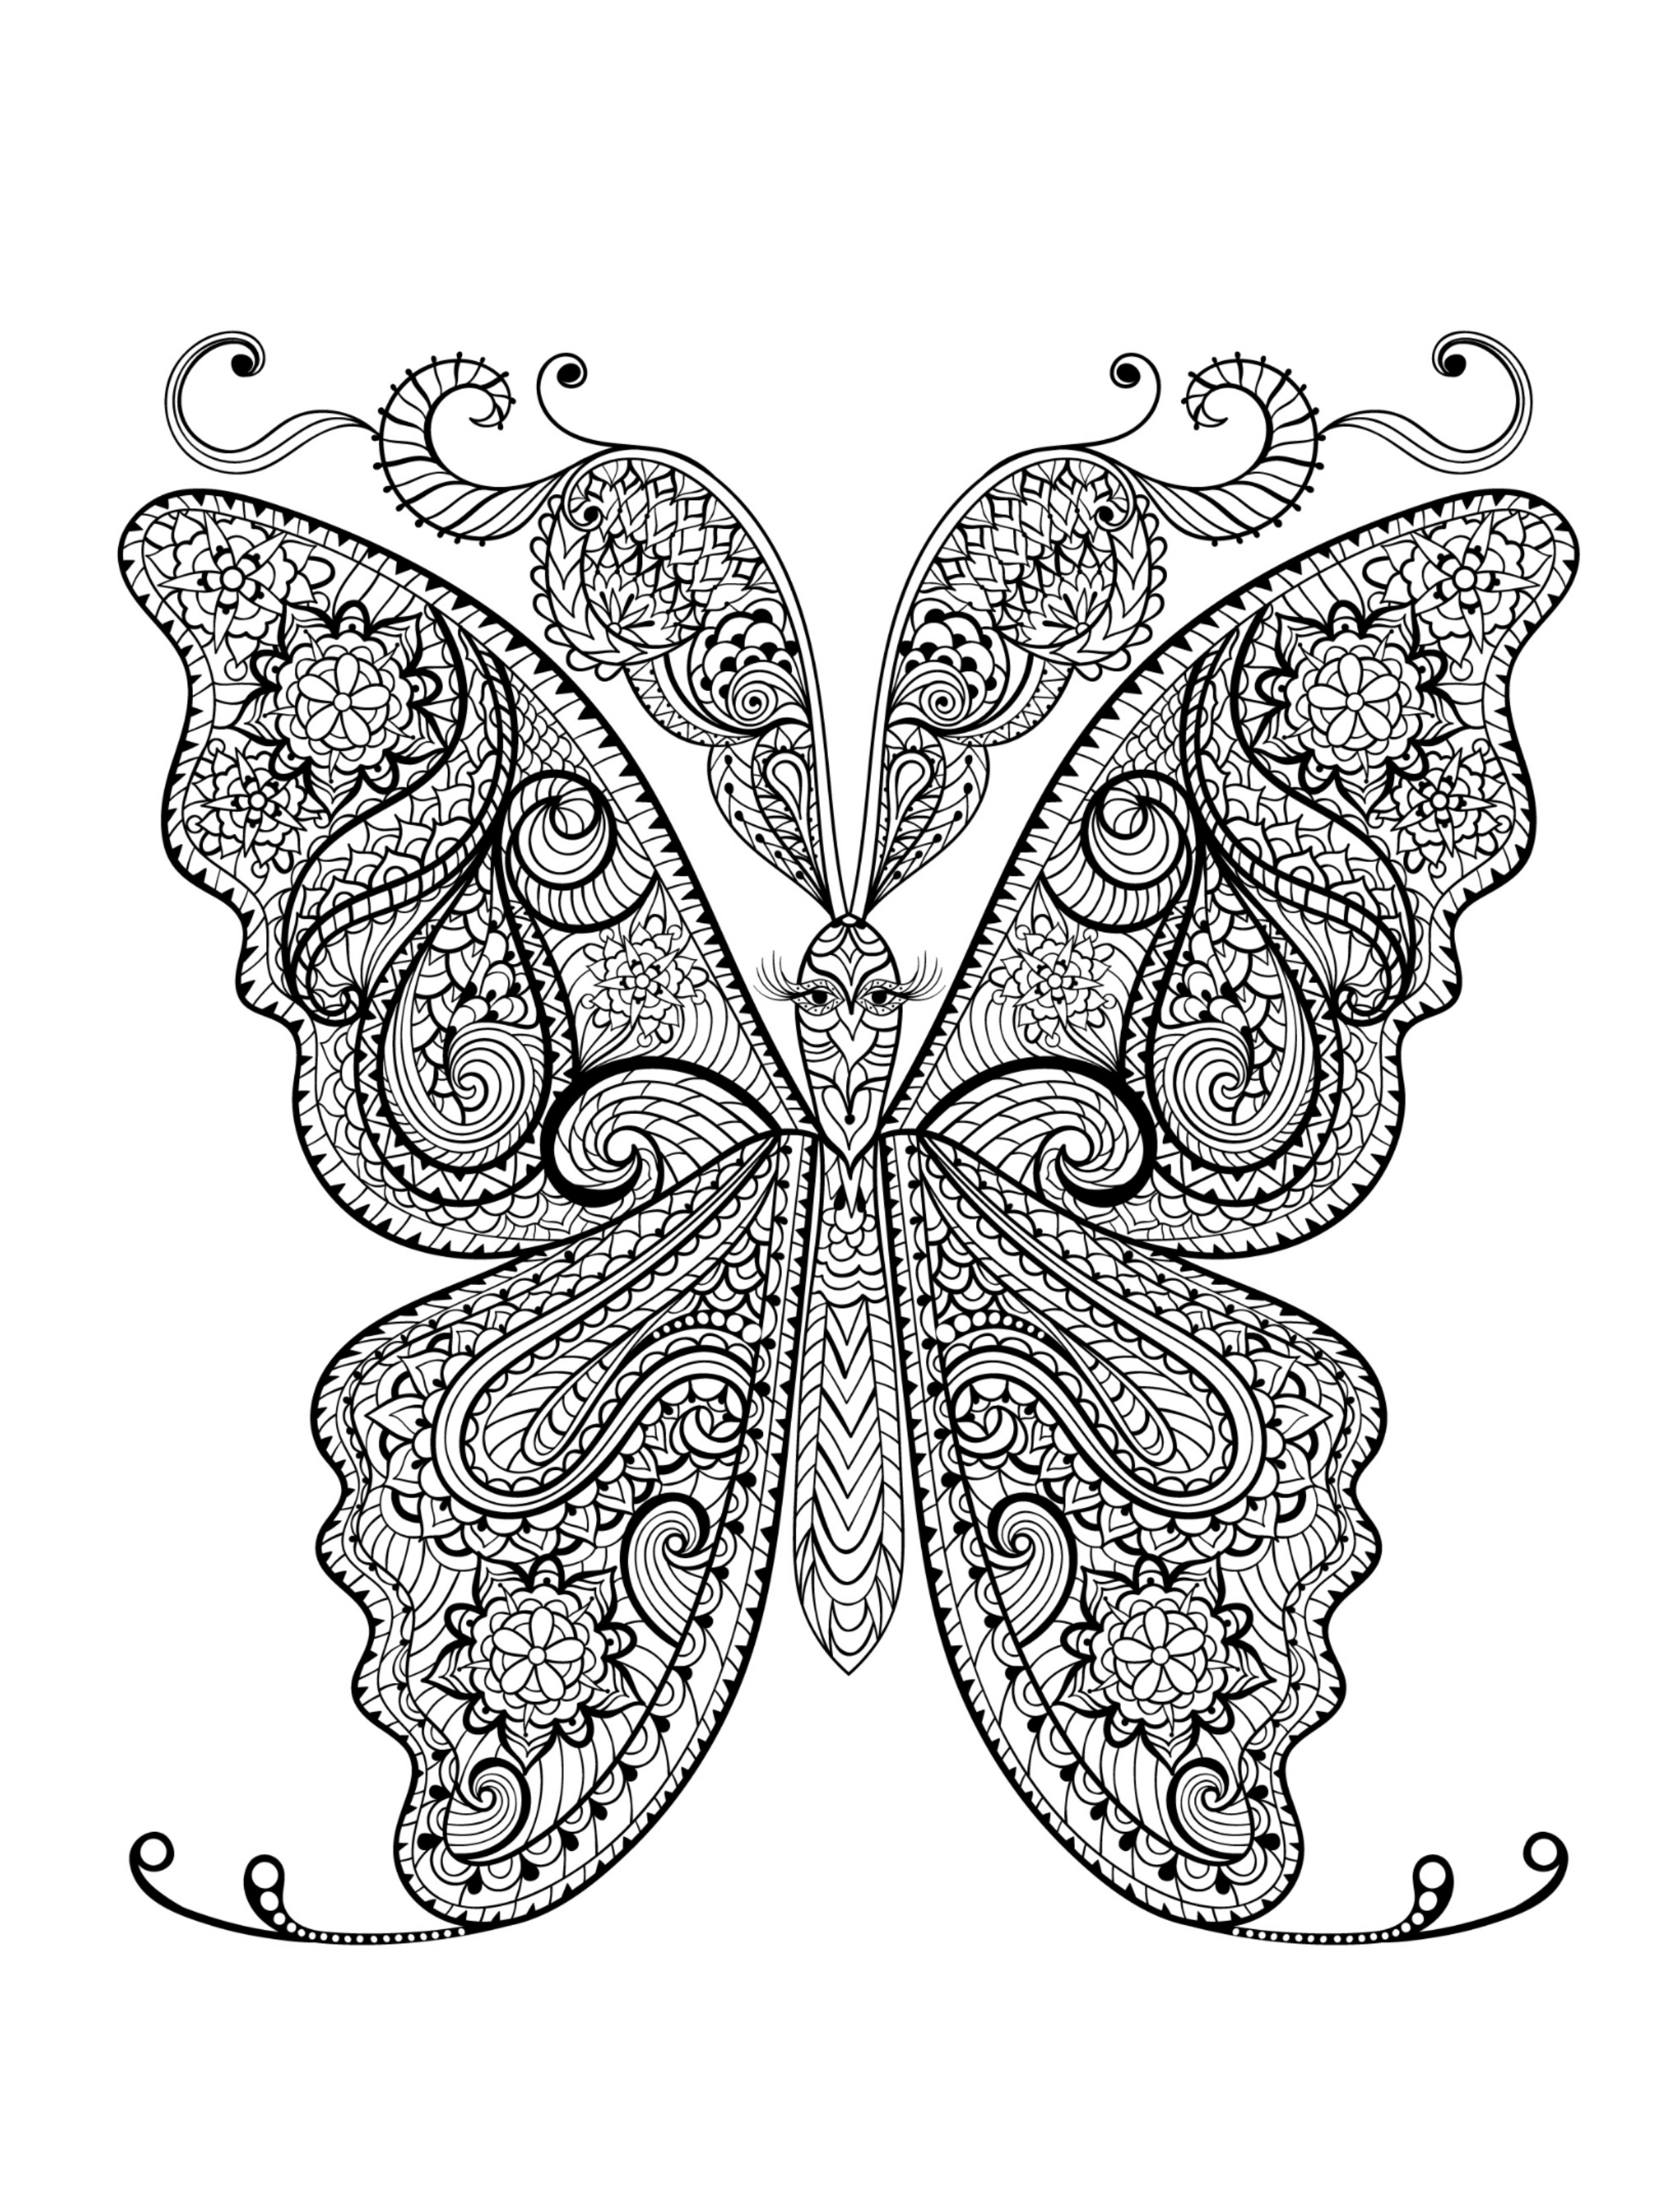 printable pictures to color for adults free 18 printable adult coloring pages in ai adults to color printable pictures for